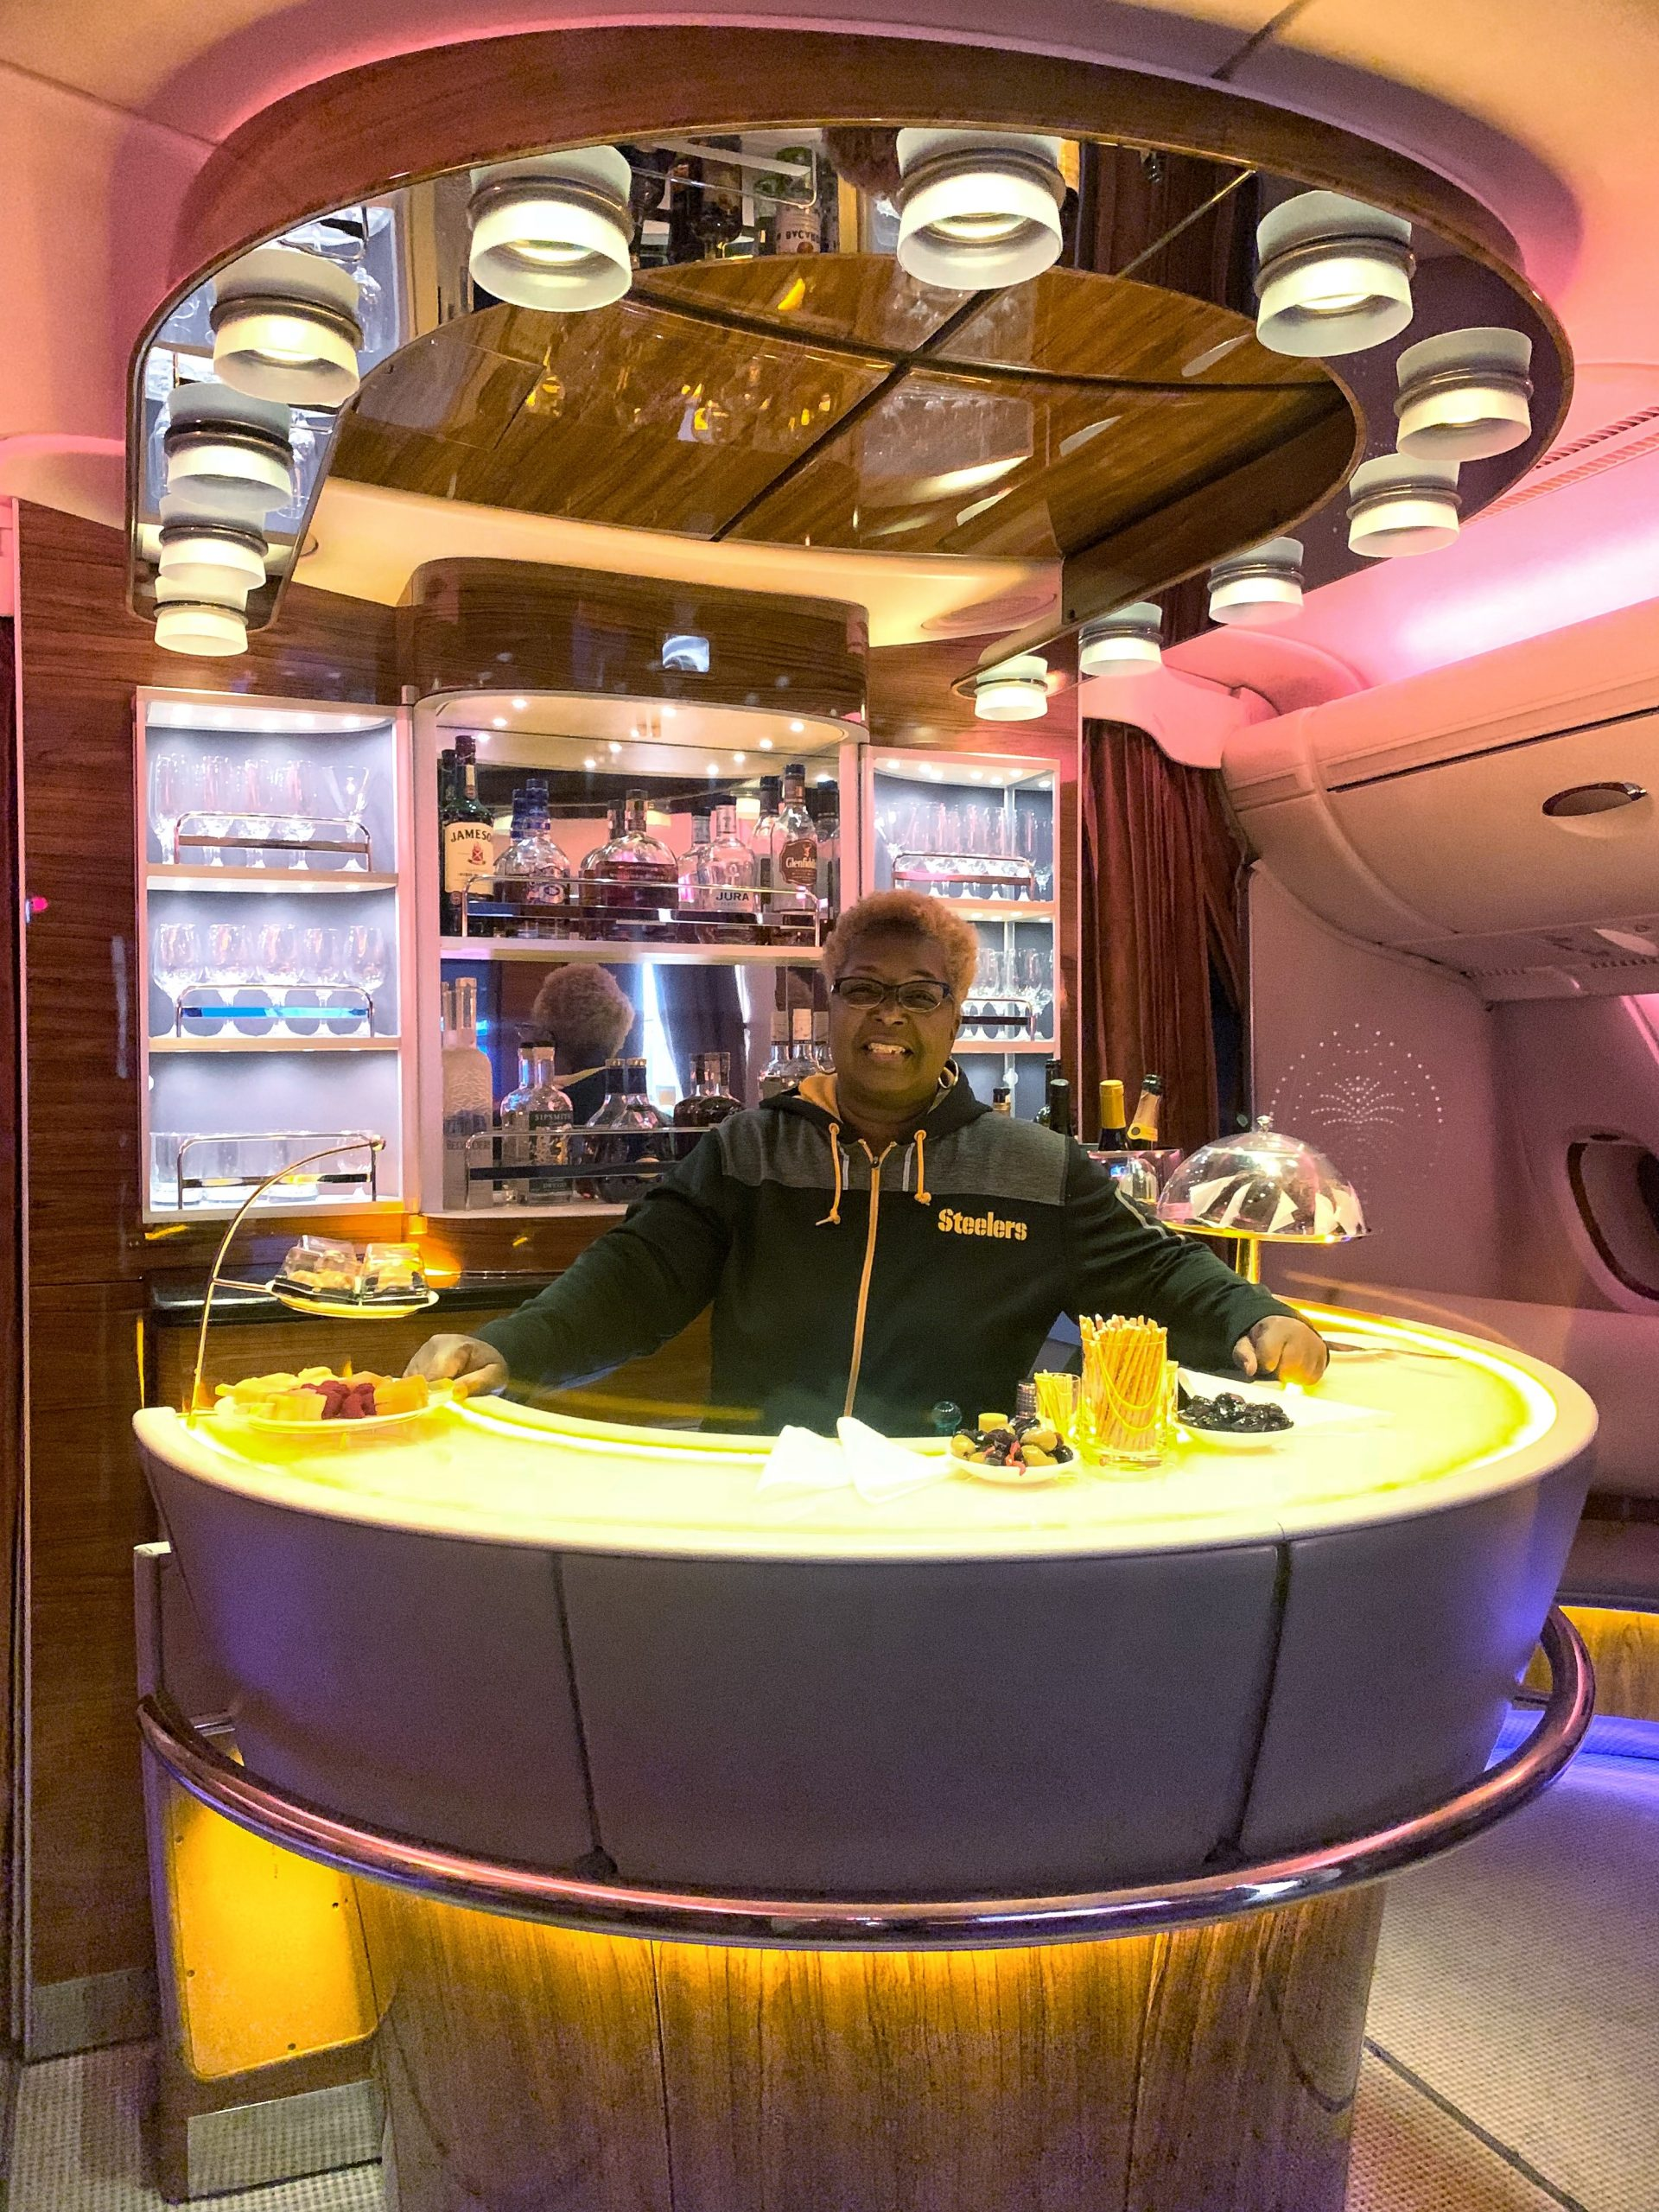 """Danielle Lewis, owner of SelfishMe Travel LLC, at the """"Bar in the Sky"""" on Emirates Airline's Airbus A380 - image taken with an iPhone 7"""